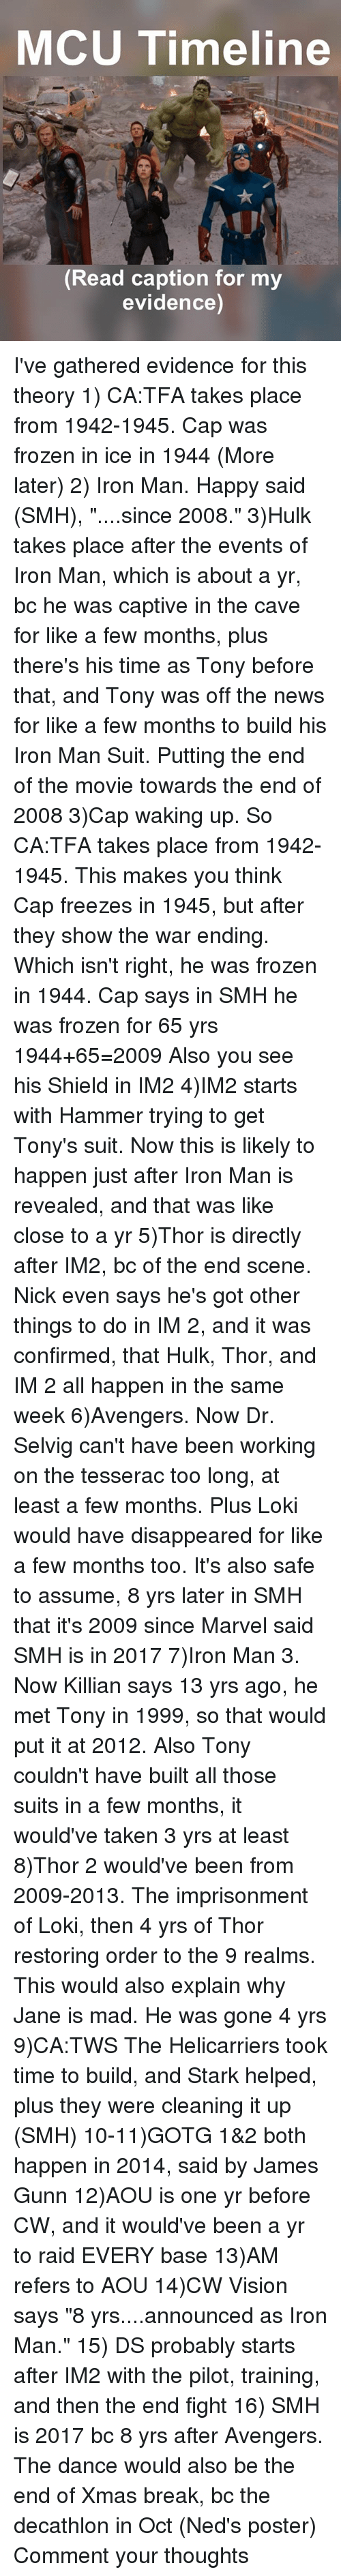 """tonys: MCU Timeline  A,  Read caption for my  evidence) I've gathered evidence for this theory 1) CA:TFA takes place from 1942-1945. Cap was frozen in ice in 1944 (More later) 2) Iron Man. Happy said (SMH), """"....since 2008."""" 3)Hulk takes place after the events of Iron Man, which is about a yr, bc he was captive in the cave for like a few months, plus there's his time as Tony before that, and Tony was off the news for like a few months to build his Iron Man Suit. Putting the end of the movie towards the end of 2008 3)Cap waking up. So CA:TFA takes place from 1942-1945. This makes you think Cap freezes in 1945, but after they show the war ending. Which isn't right, he was frozen in 1944. Cap says in SMH he was frozen for 65 yrs 1944+65=2009 Also you see his Shield in IM2 4)IM2 starts with Hammer trying to get Tony's suit. Now this is likely to happen just after Iron Man is revealed, and that was like close to a yr 5)Thor is directly after IM2, bc of the end scene. Nick even says he's got other things to do in IM 2, and it was confirmed, that Hulk, Thor, and IM 2 all happen in the same week 6)Avengers. Now Dr. Selvig can't have been working on the tesserac too long, at least a few months. Plus Loki would have disappeared for like a few months too. It's also safe to assume, 8 yrs later in SMH that it's 2009 since Marvel said SMH is in 2017 7)Iron Man 3. Now Killian says 13 yrs ago, he met Tony in 1999, so that would put it at 2012. Also Tony couldn't have built all those suits in a few months, it would've taken 3 yrs at least 8)Thor 2 would've been from 2009-2013. The imprisonment of Loki, then 4 yrs of Thor restoring order to the 9 realms. This would also explain why Jane is mad. He was gone 4 yrs 9)CA:TWS The Helicarriers took time to build, and Stark helped, plus they were cleaning it up (SMH) 10-11)GOTG 1&2 both happen in 2014, said by James Gunn 12)AOU is one yr before CW, and it would've been a yr to raid EVERY base 13)AM refers to AOU 14)CW Vision says """"8 yrs...."""